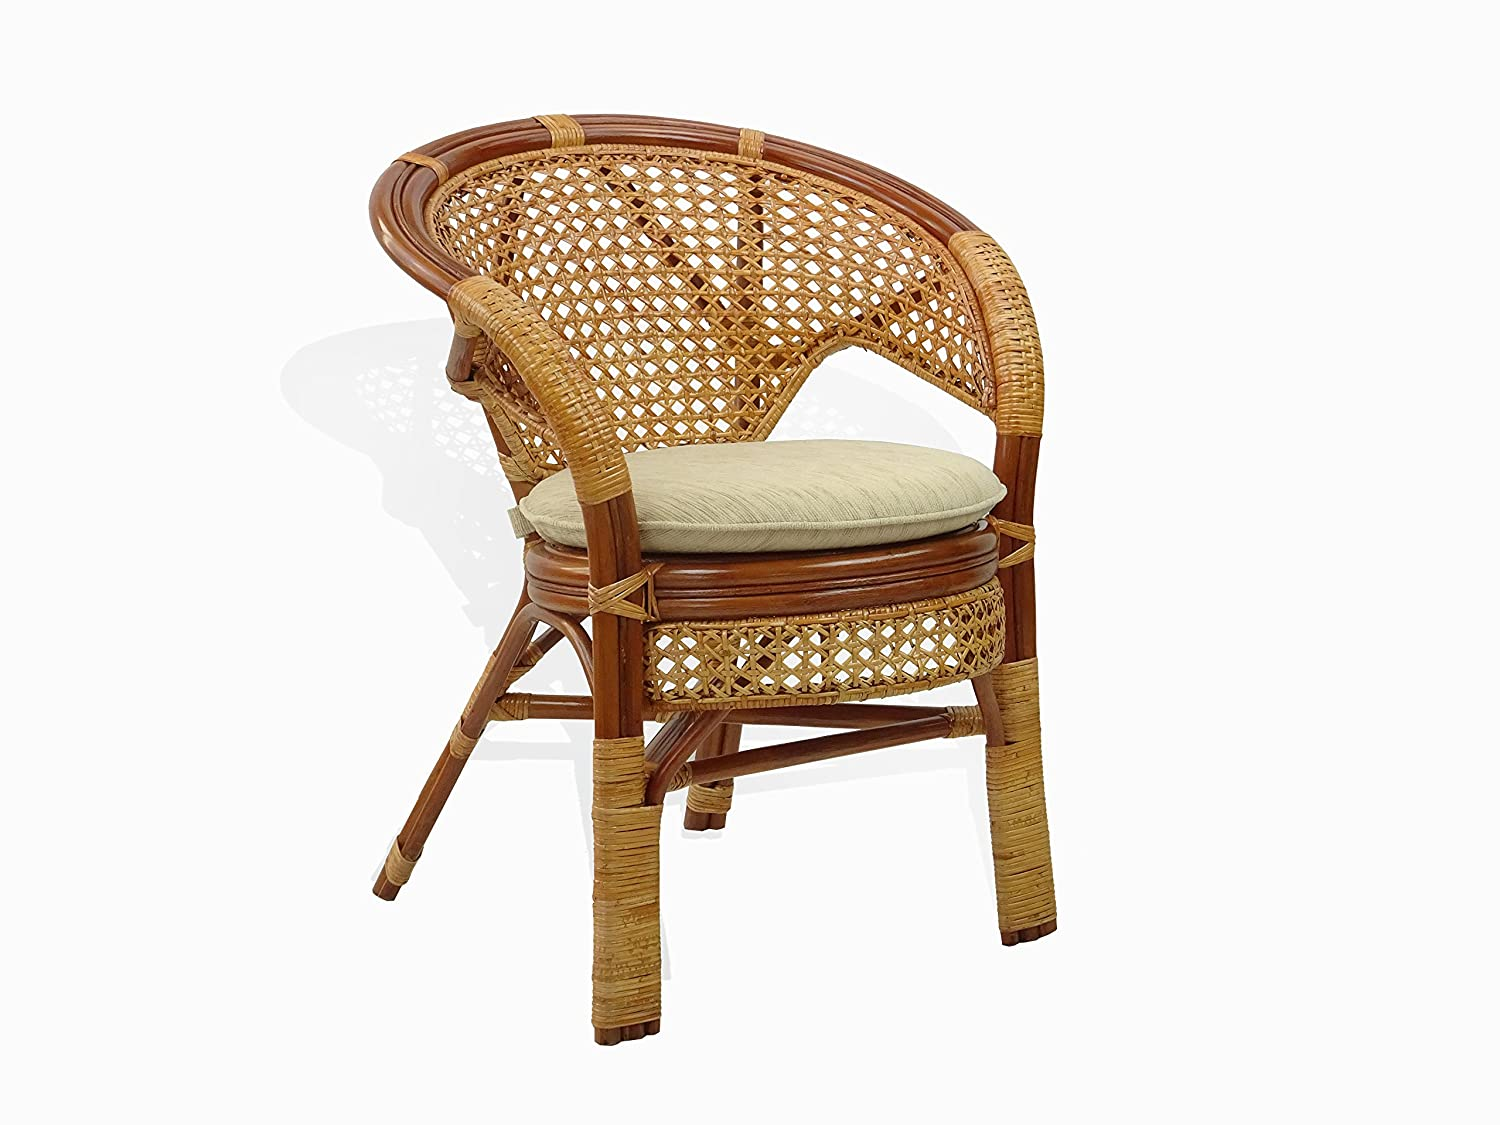 Amazon.com - Pelangi Handmade Rattan Dining Wicker Chair W/cushion ...